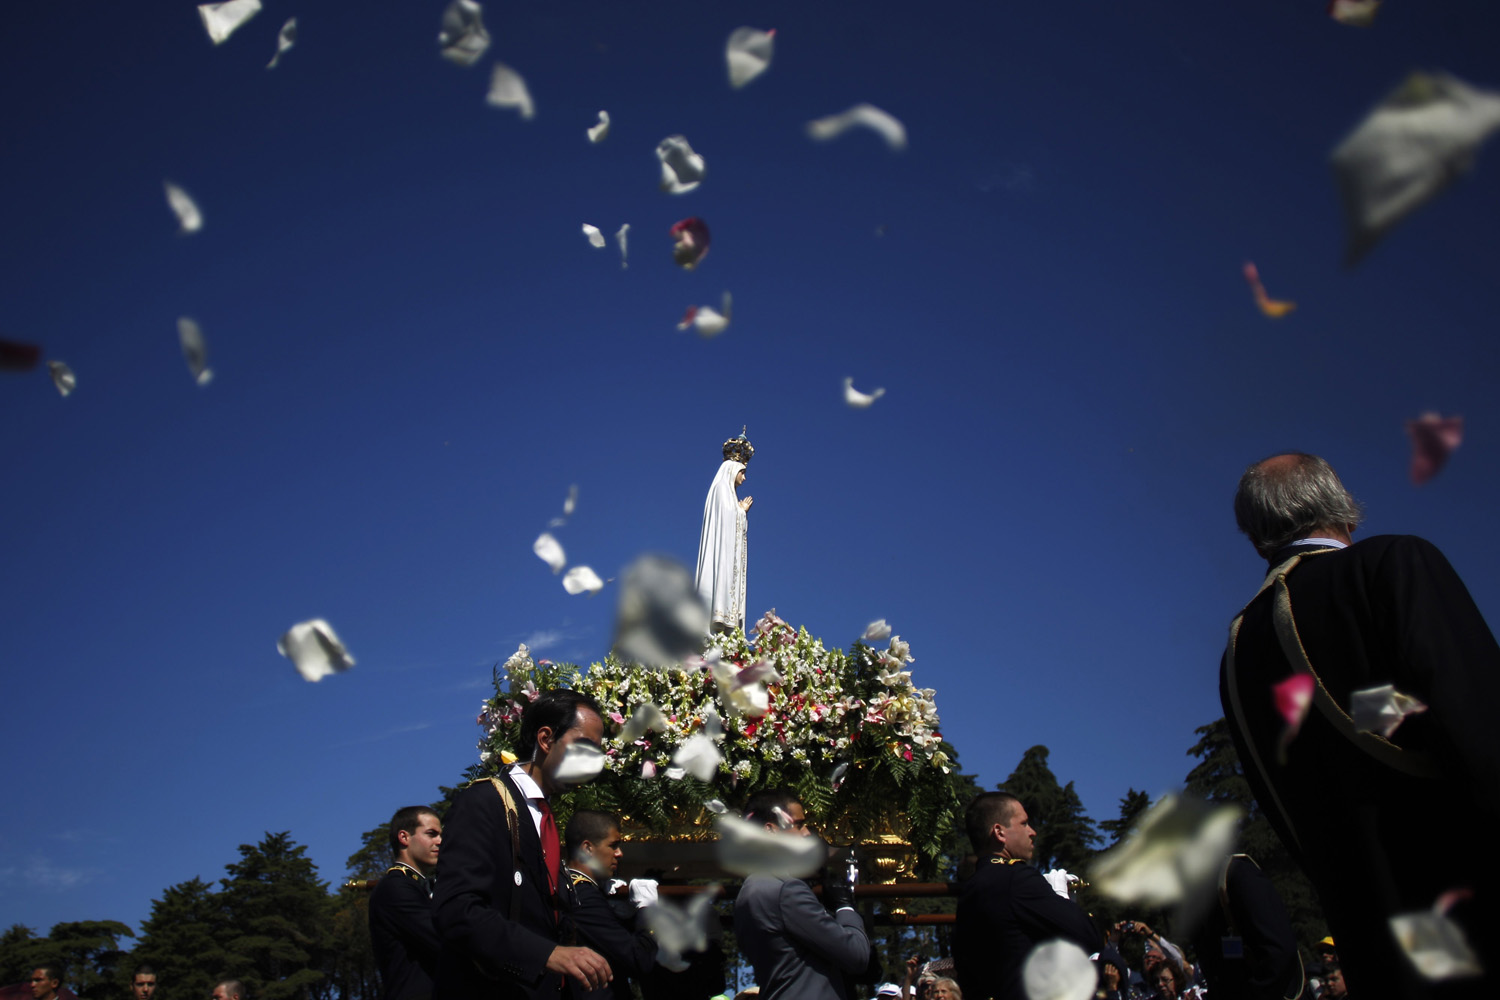 May 13, 2014. Worshipers throw flower petals to the statue of  Our Lady of Fatima at the Our Lady of Fatima shrine, in Fatima, centre Portugal.